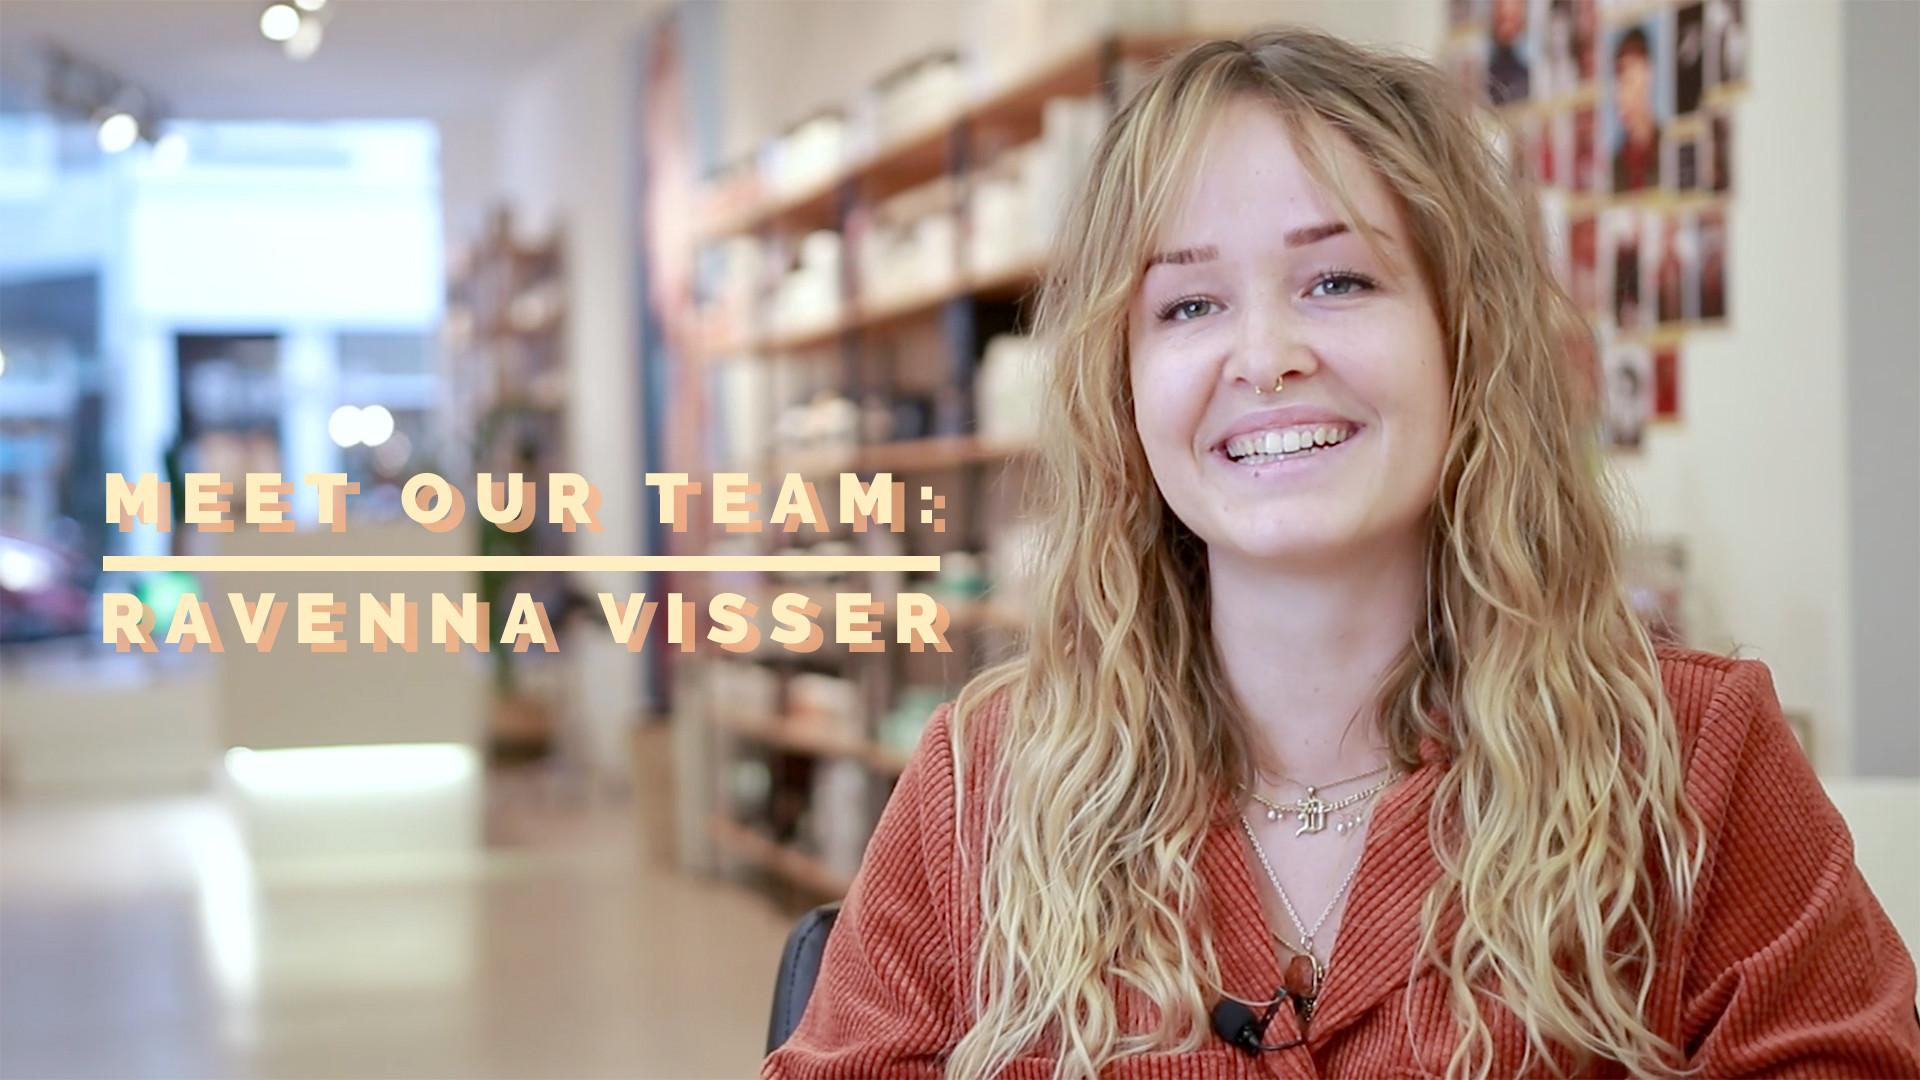 Meet our team: Ravenna Visser